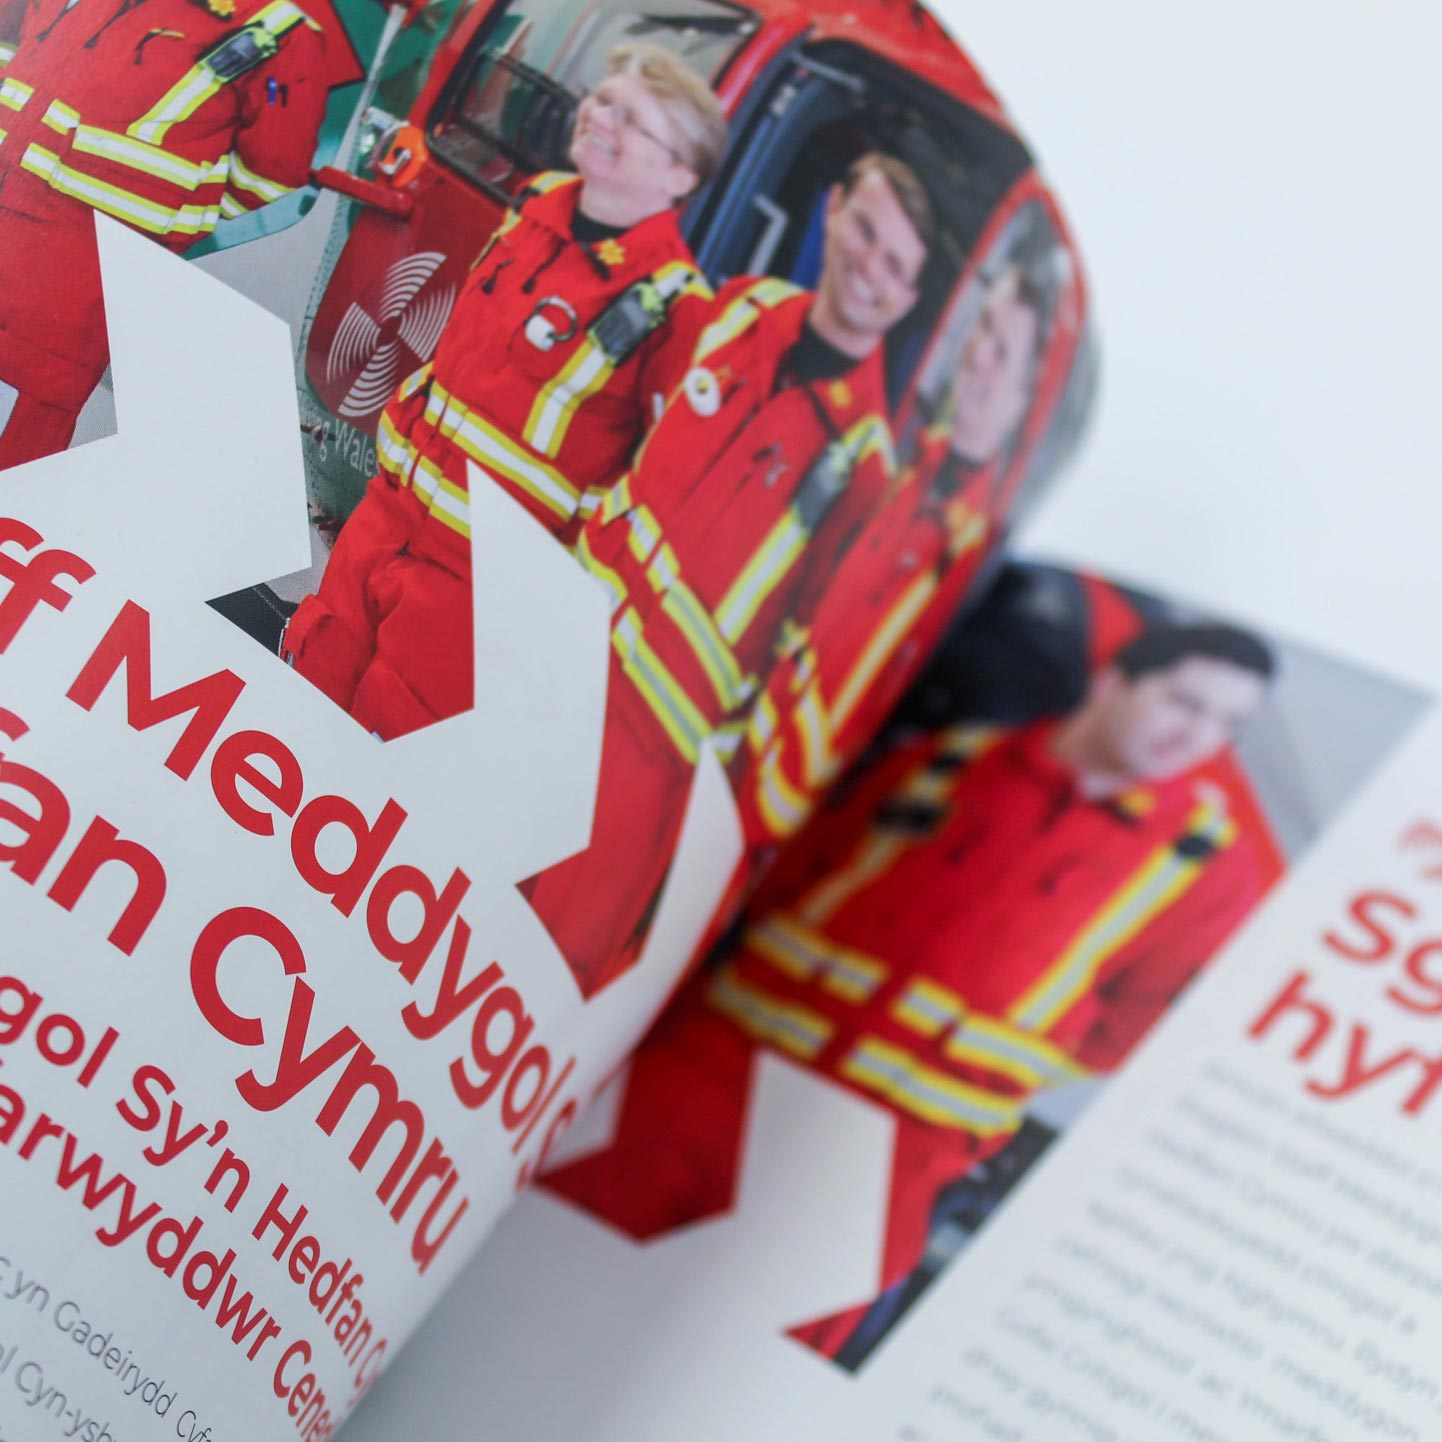 Wales Air Ambulance Annual Review